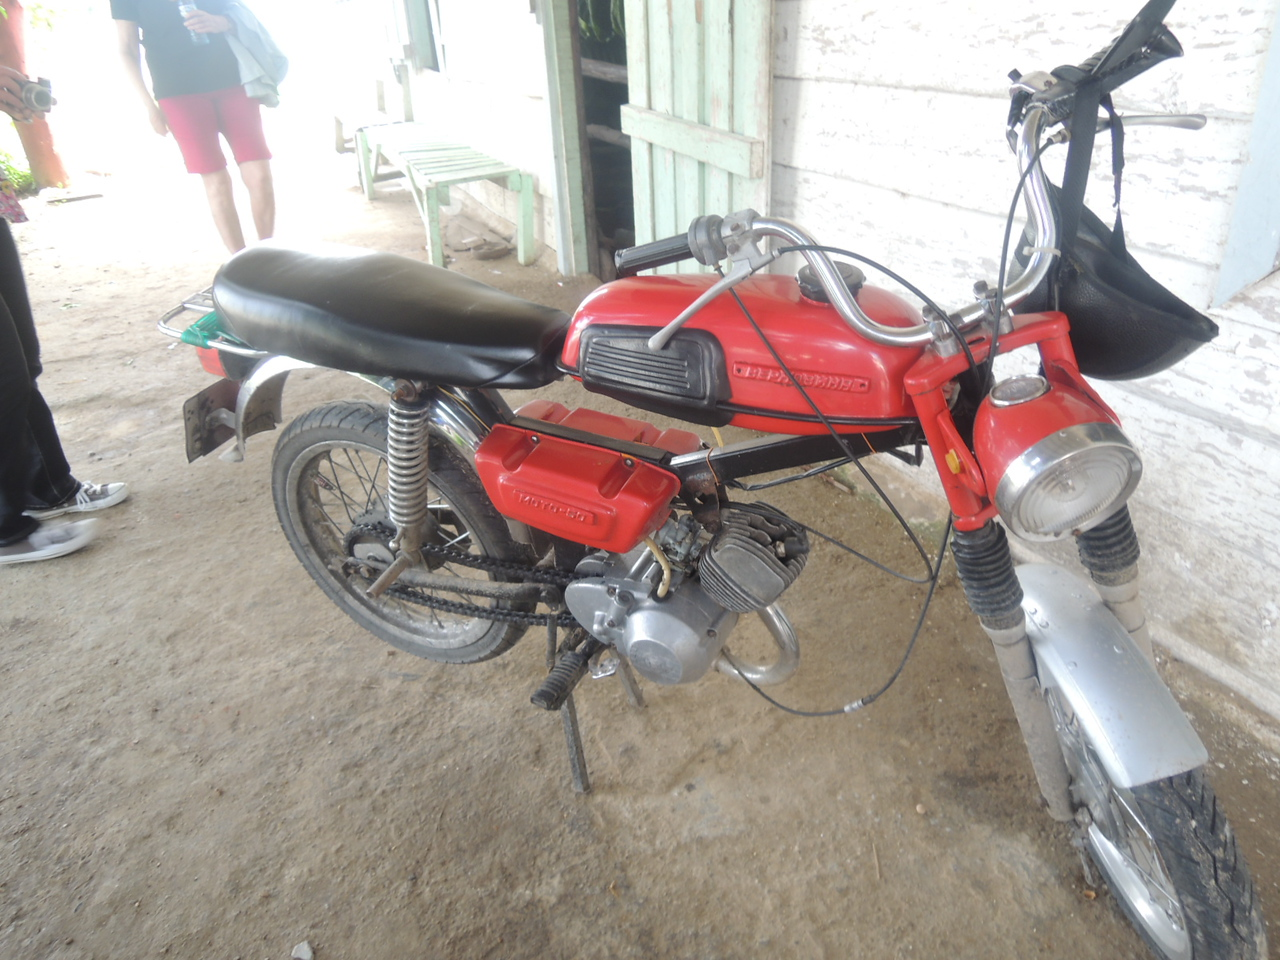 There were a couple of these motorbikes at the tobacco farm.  I have no idea what they were.